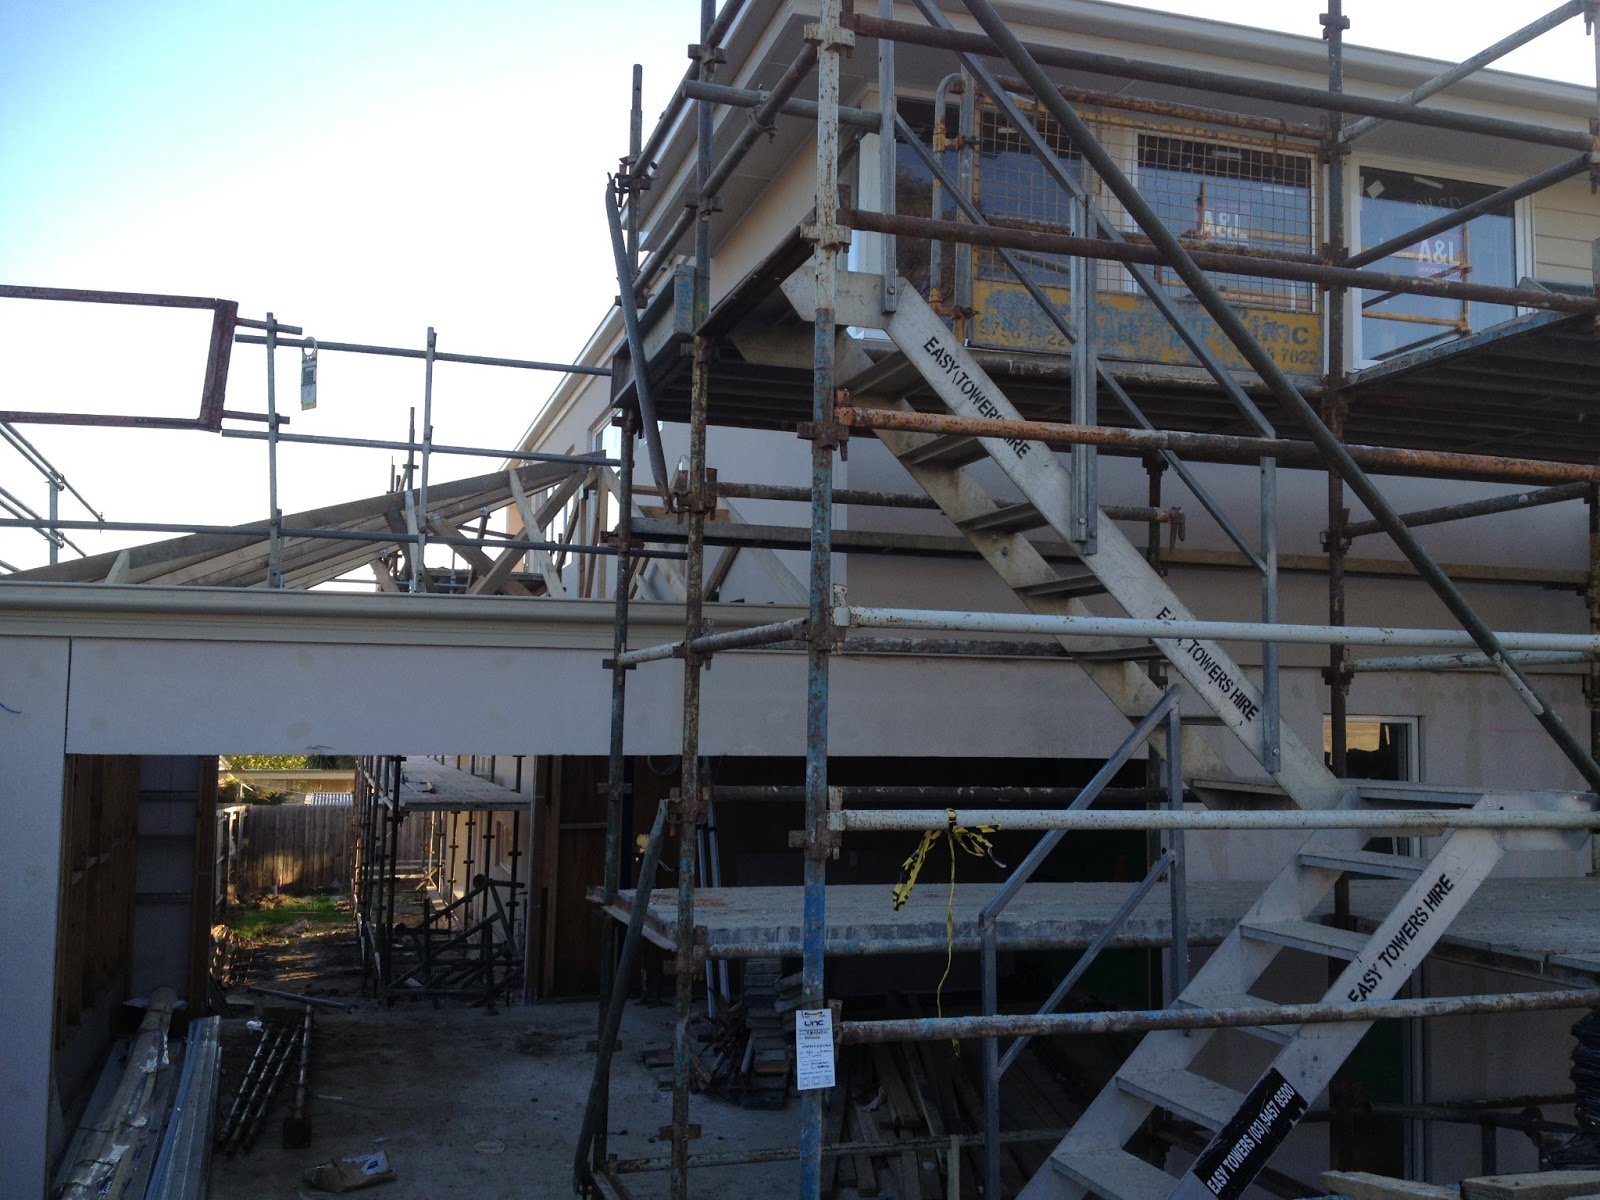 Carter grange radisson 43 custom build day 119 ready to for Pre made roof trusses